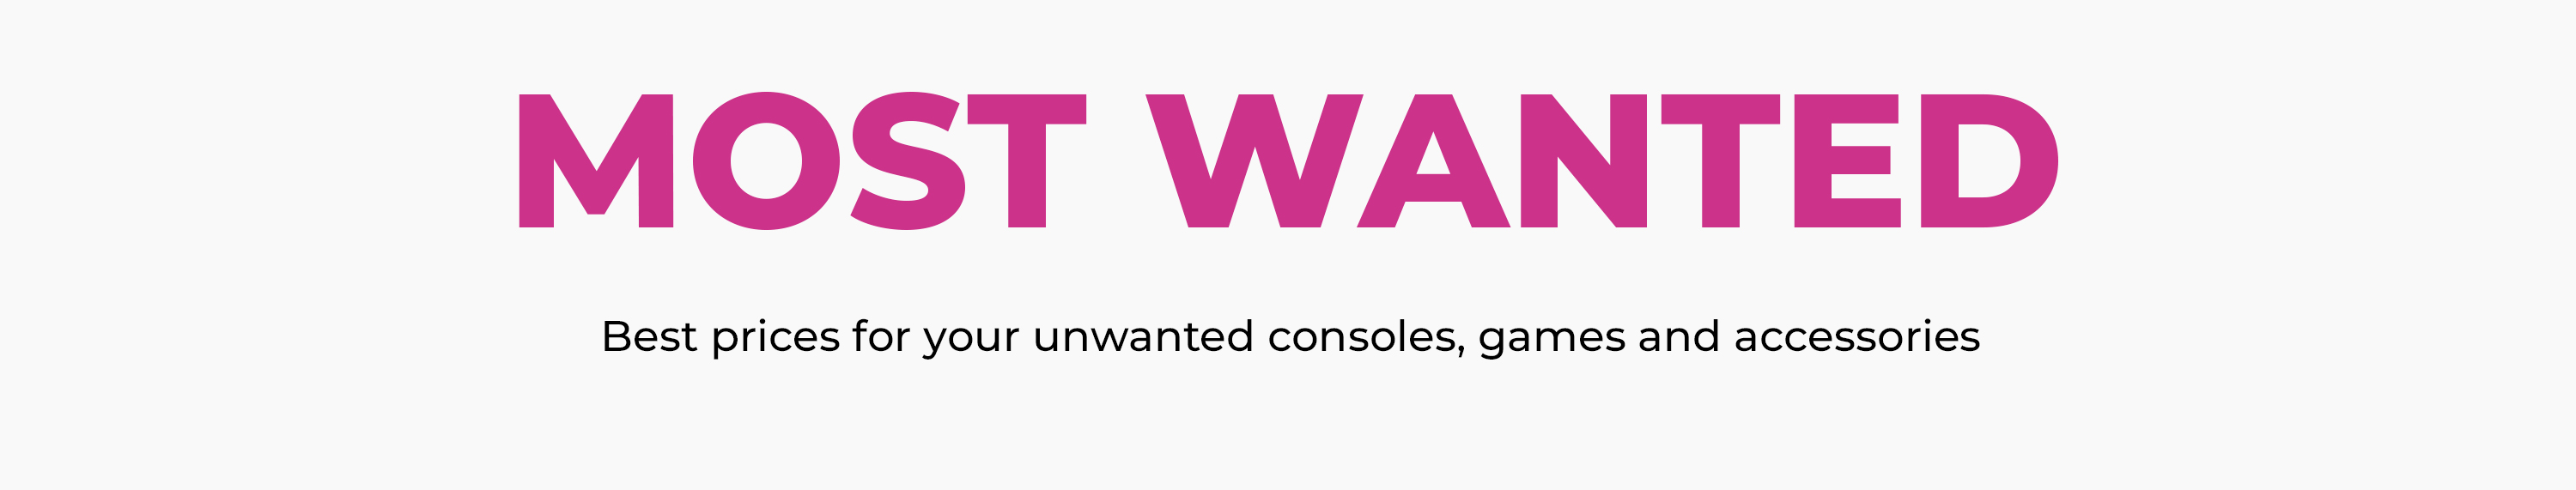 Sell your unwanted consoles, games and accessories at GAME for cash or credit